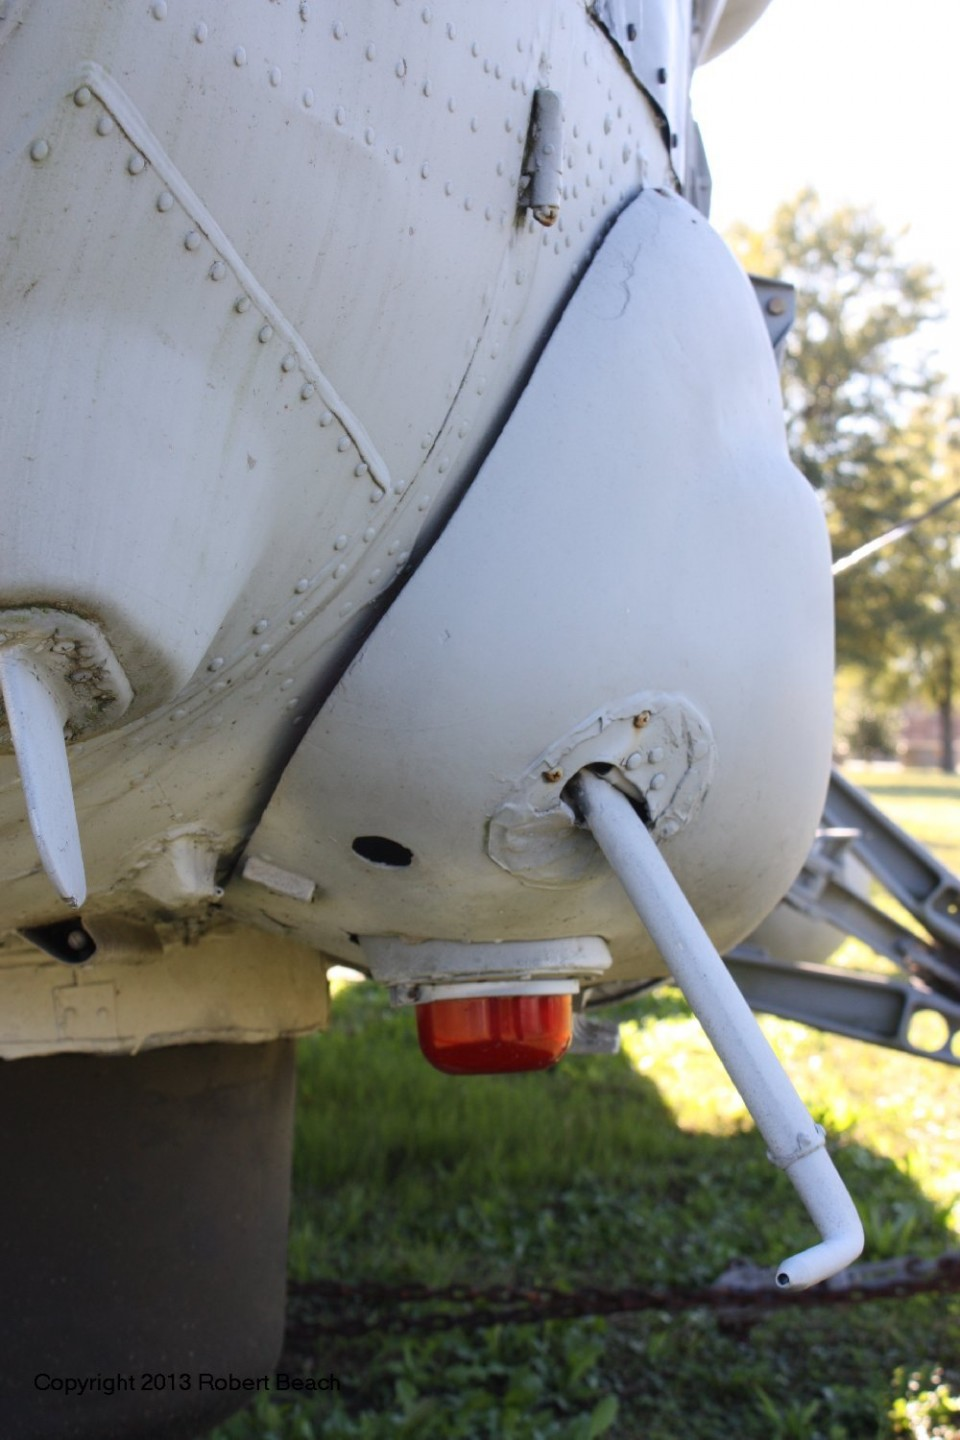 port gear fairing frm frnt and pitot